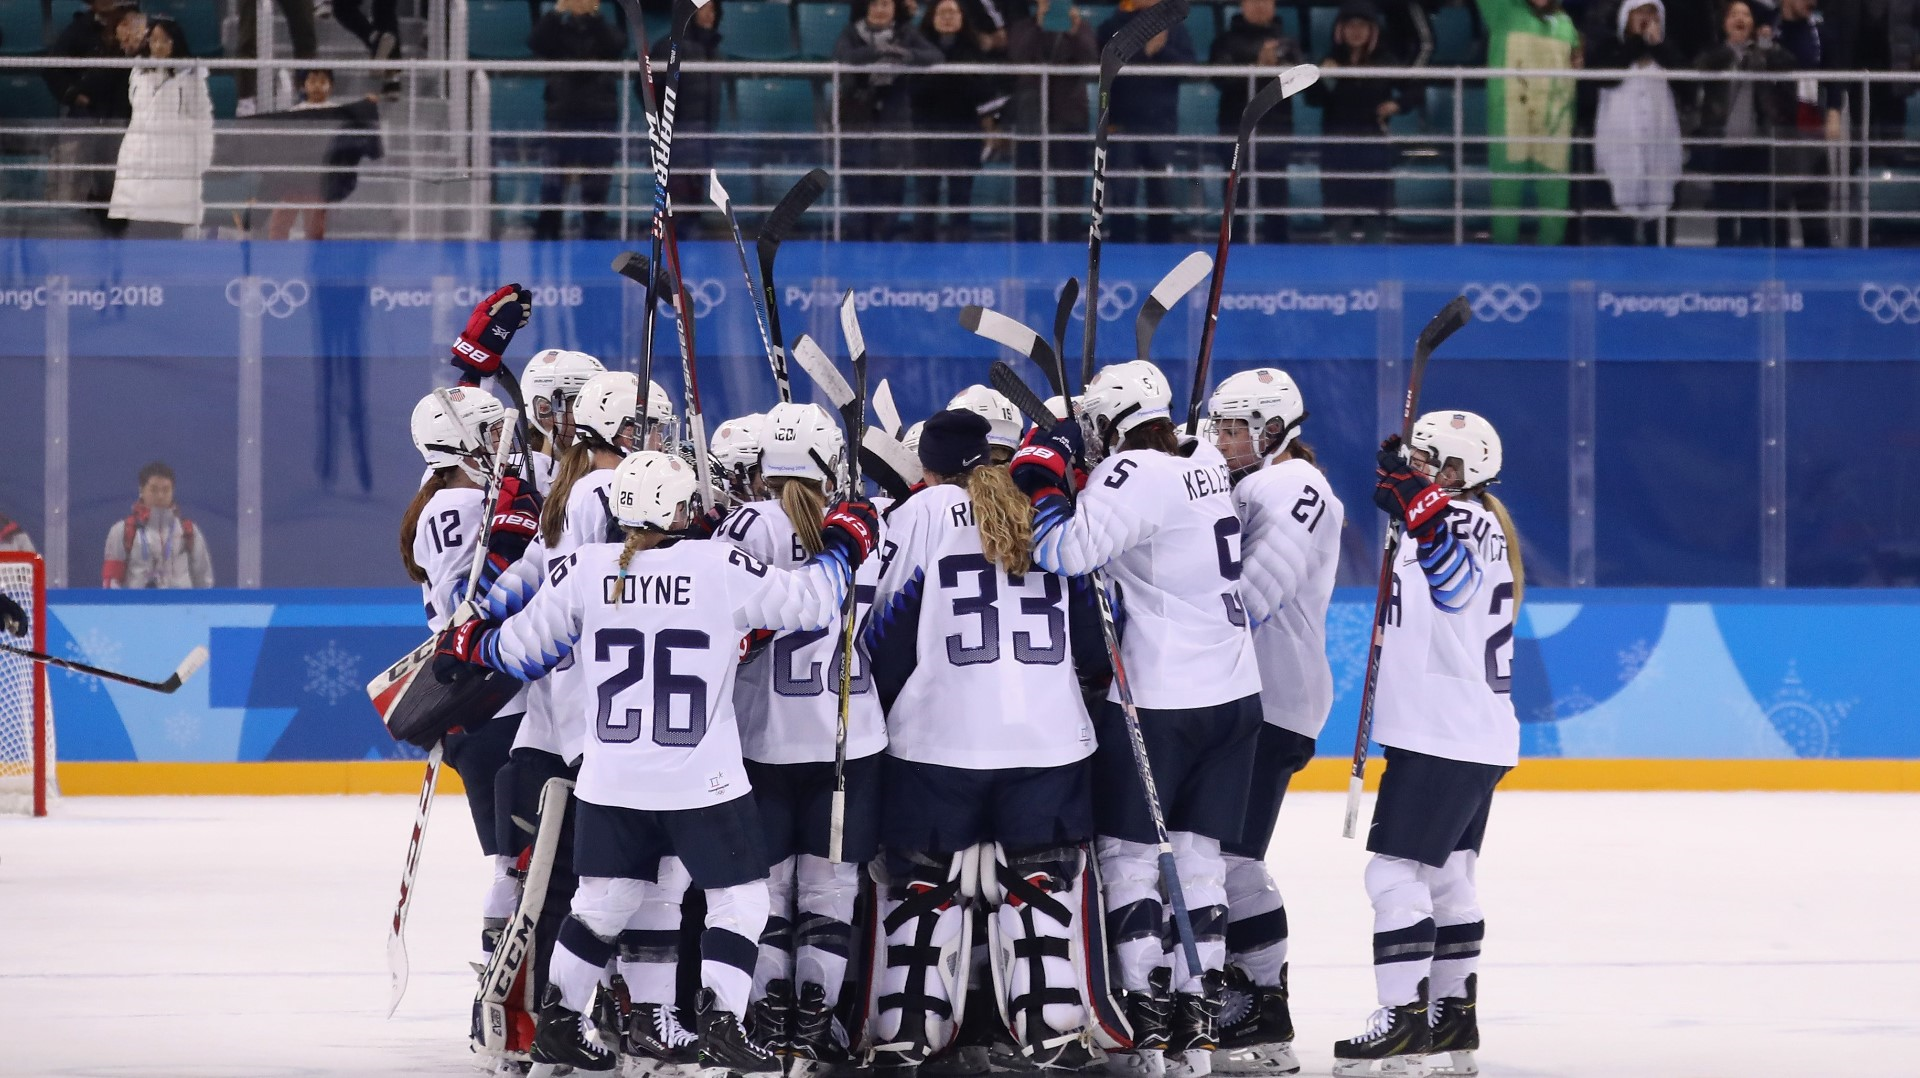 meet the us womens hockey team The league is recognized by usa hockey as the top women's professional became the first women's hockey team to enter a regular broadcasting agreement with a.